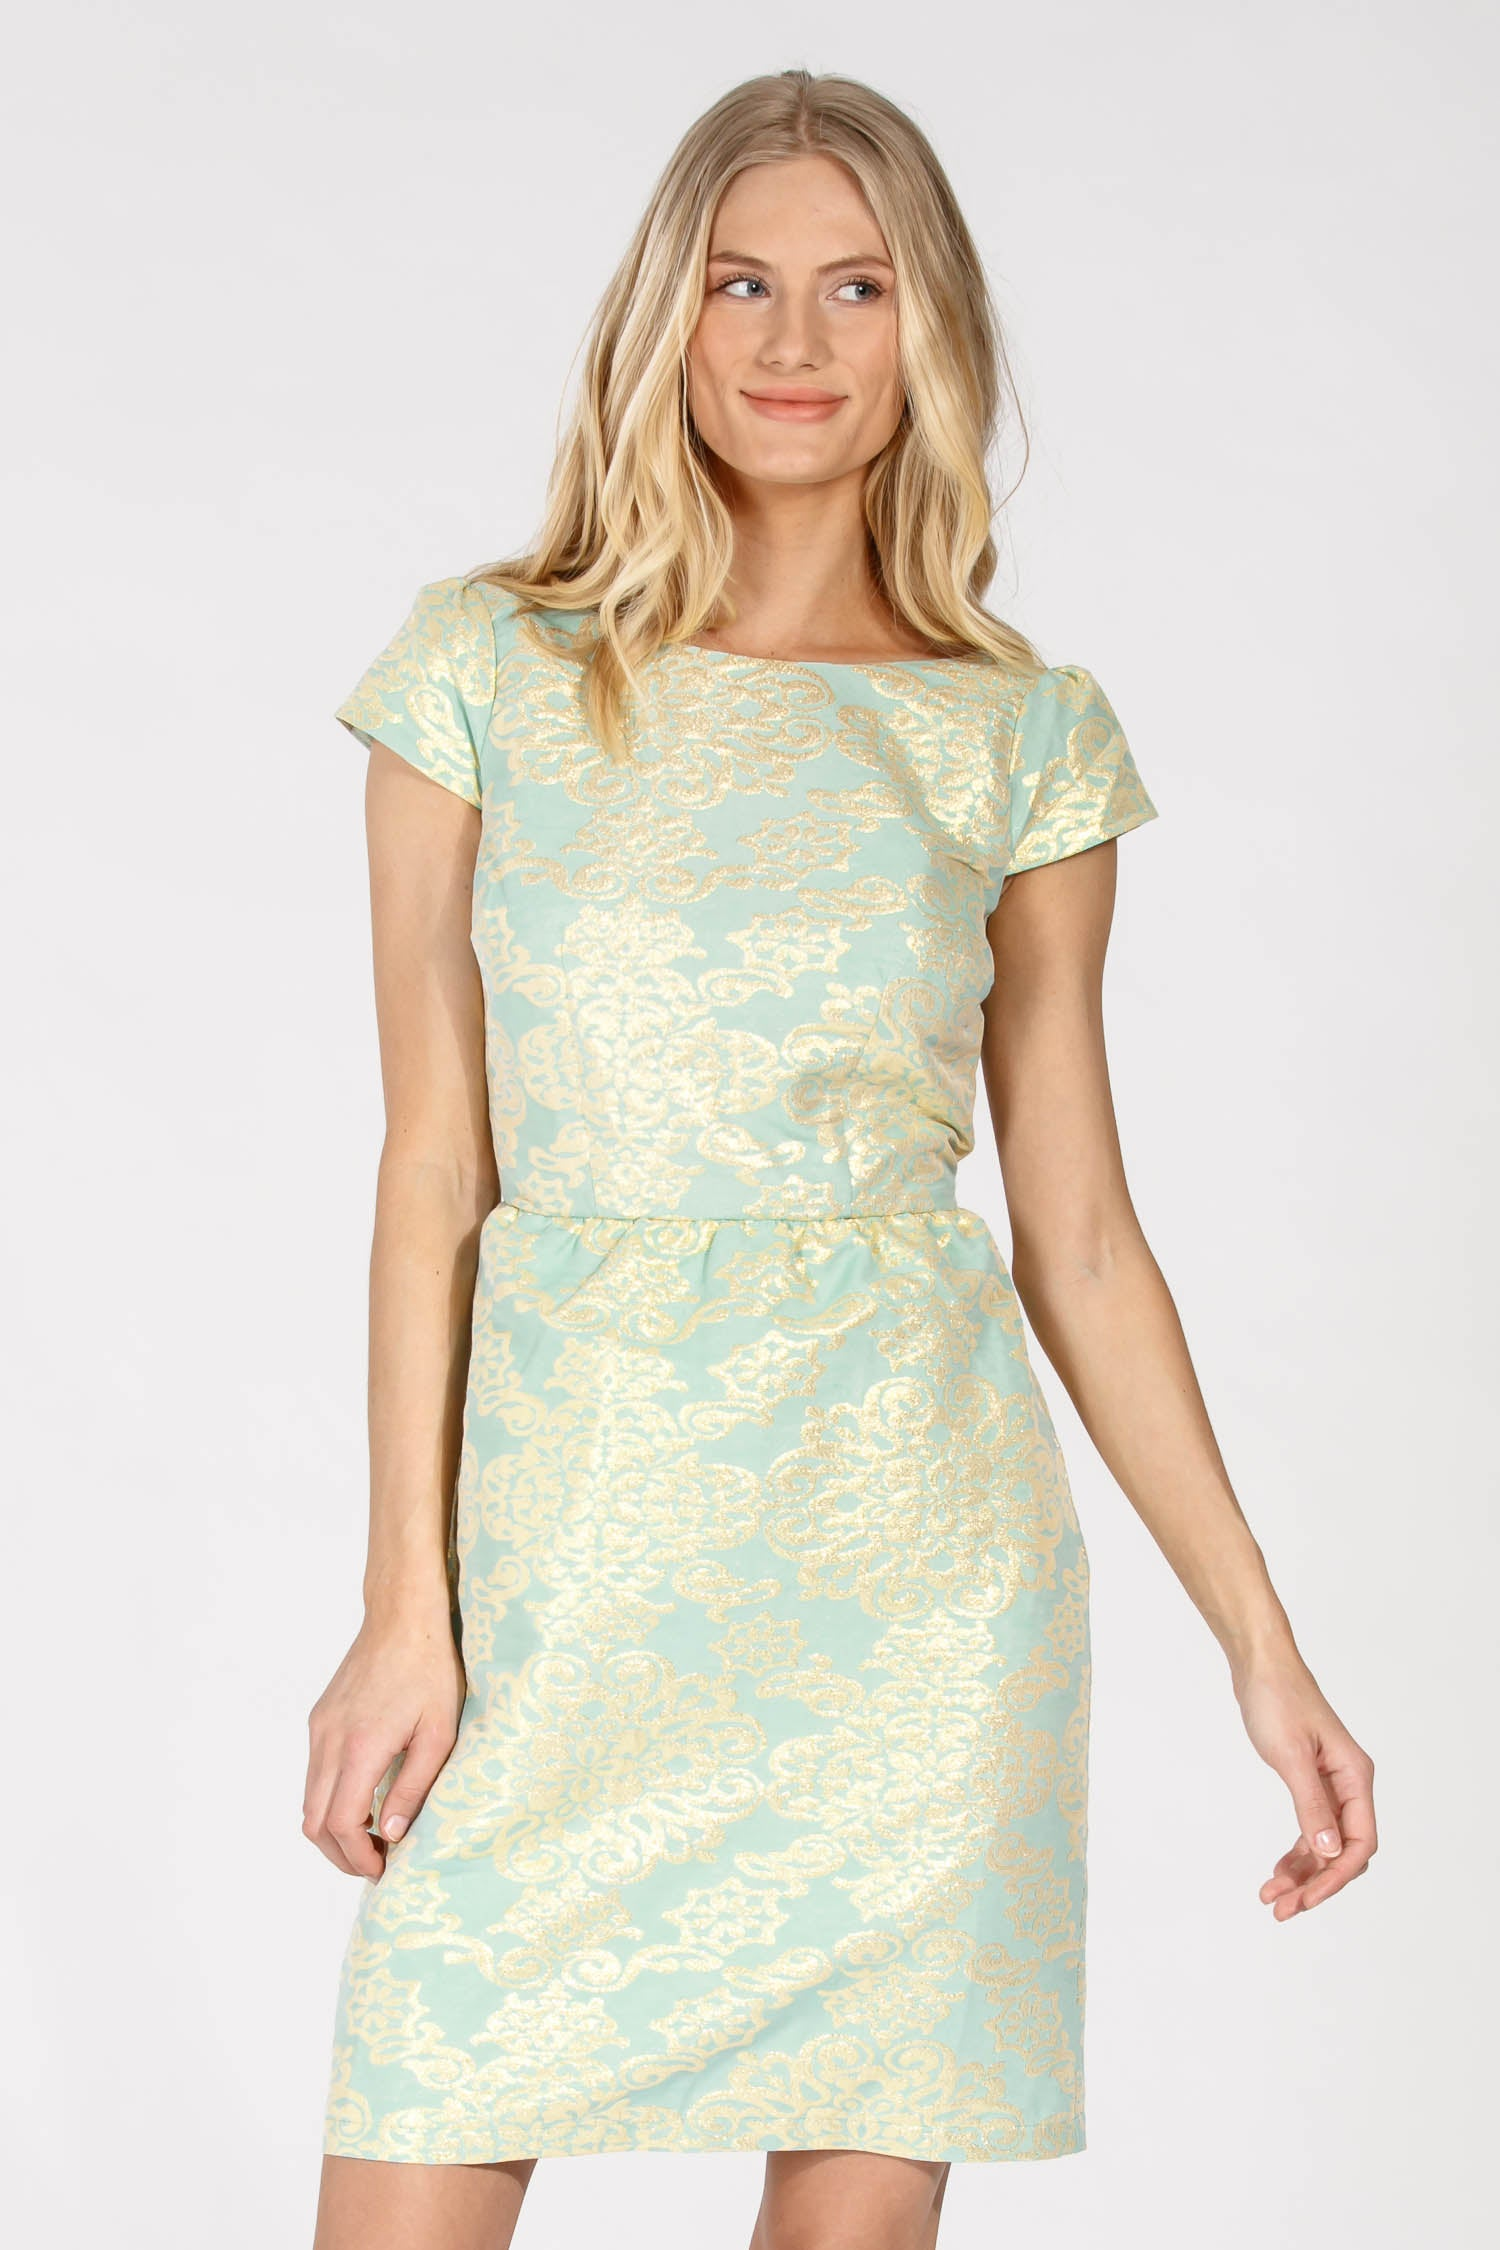 Cute metallic short dress - Turquoise gold